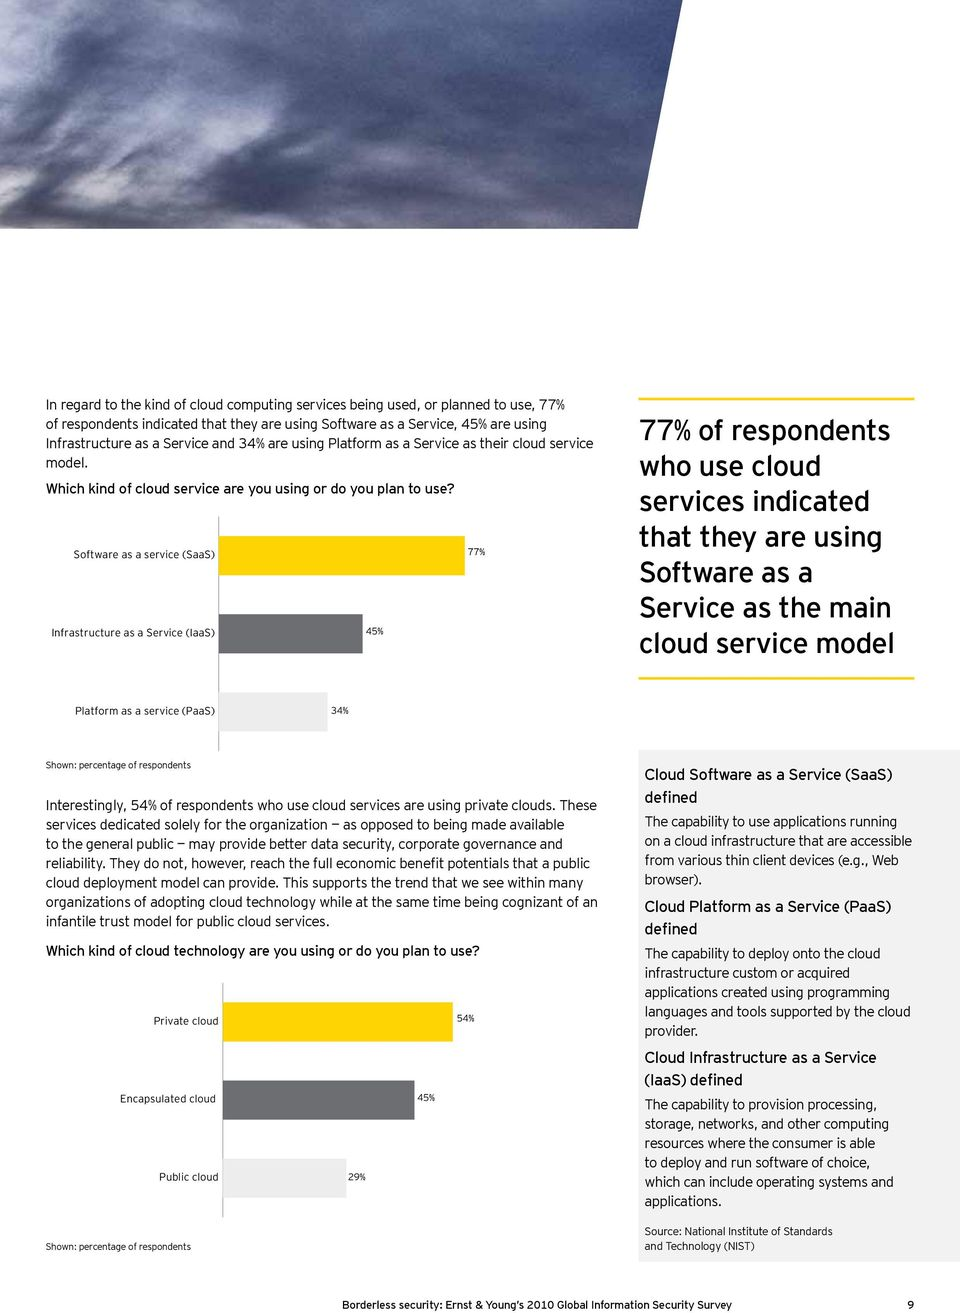 Software as a service (SaaS) 77% Infrastructure as a Service (IaaS) 45% 77% of respondents who use cloud services indicated that they are using Software as a Service as the main cloud service model